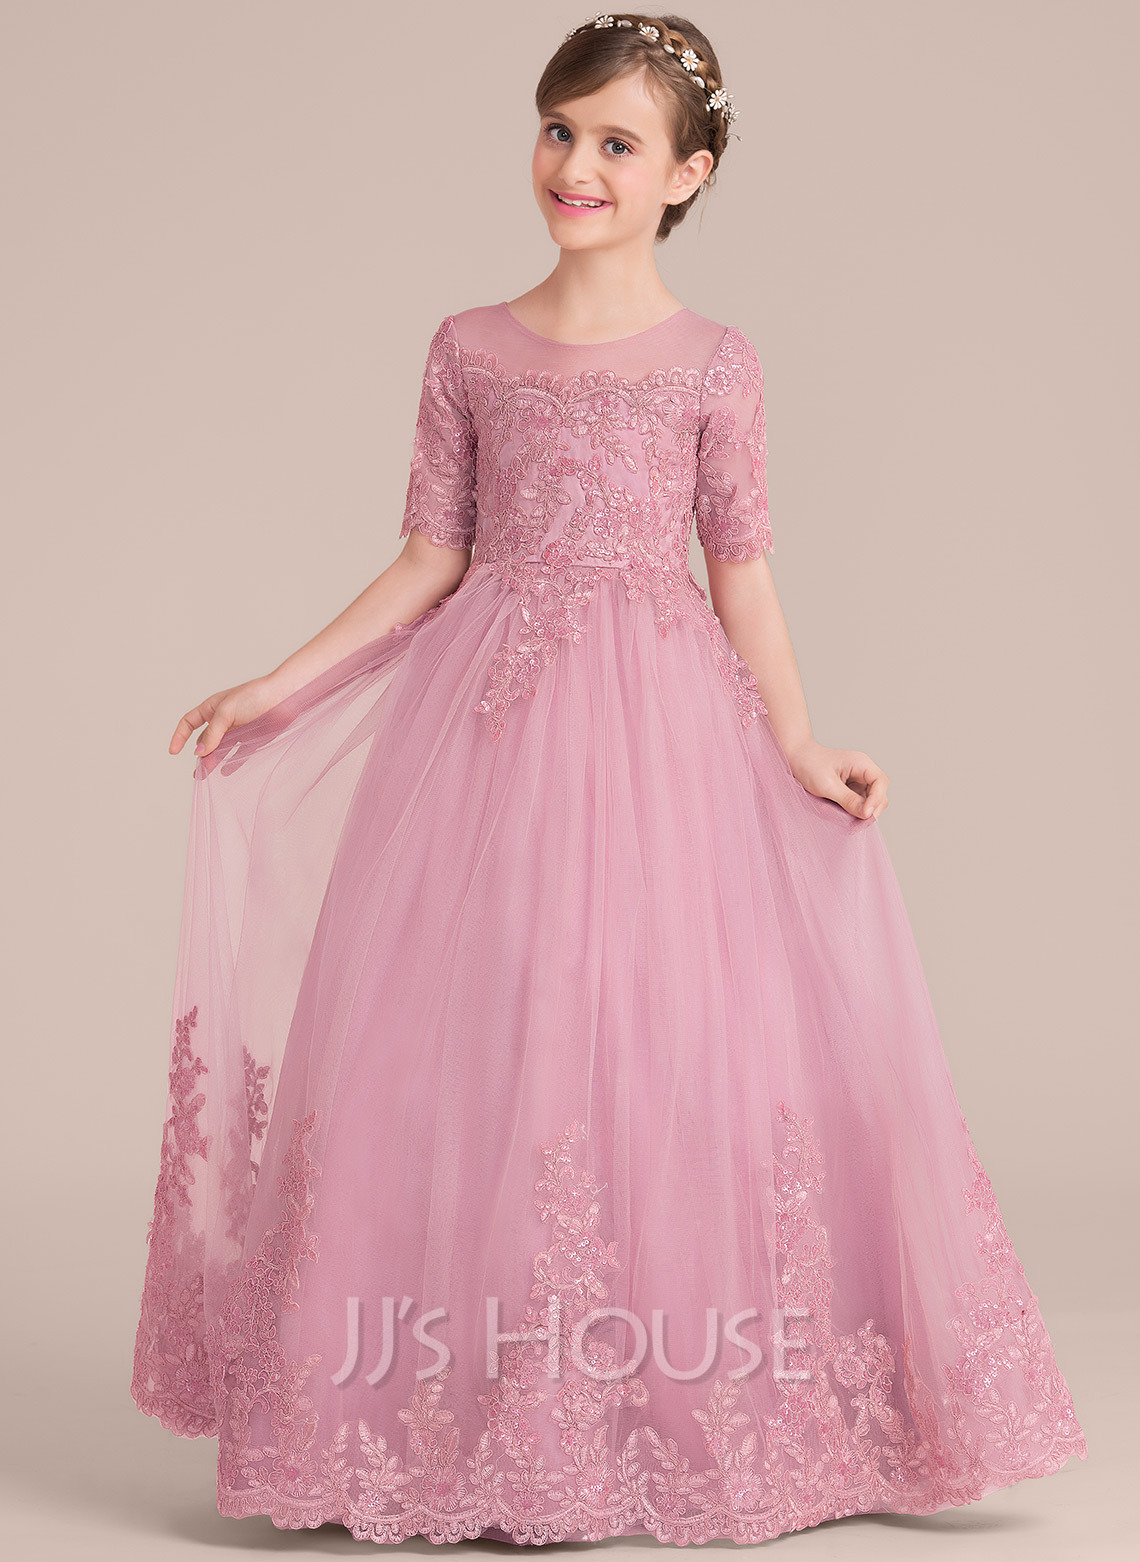 Find affordable flower girl dresses jjshouse ball gown floor length flower girl dress tullelace 12 sleeves izmirmasajfo